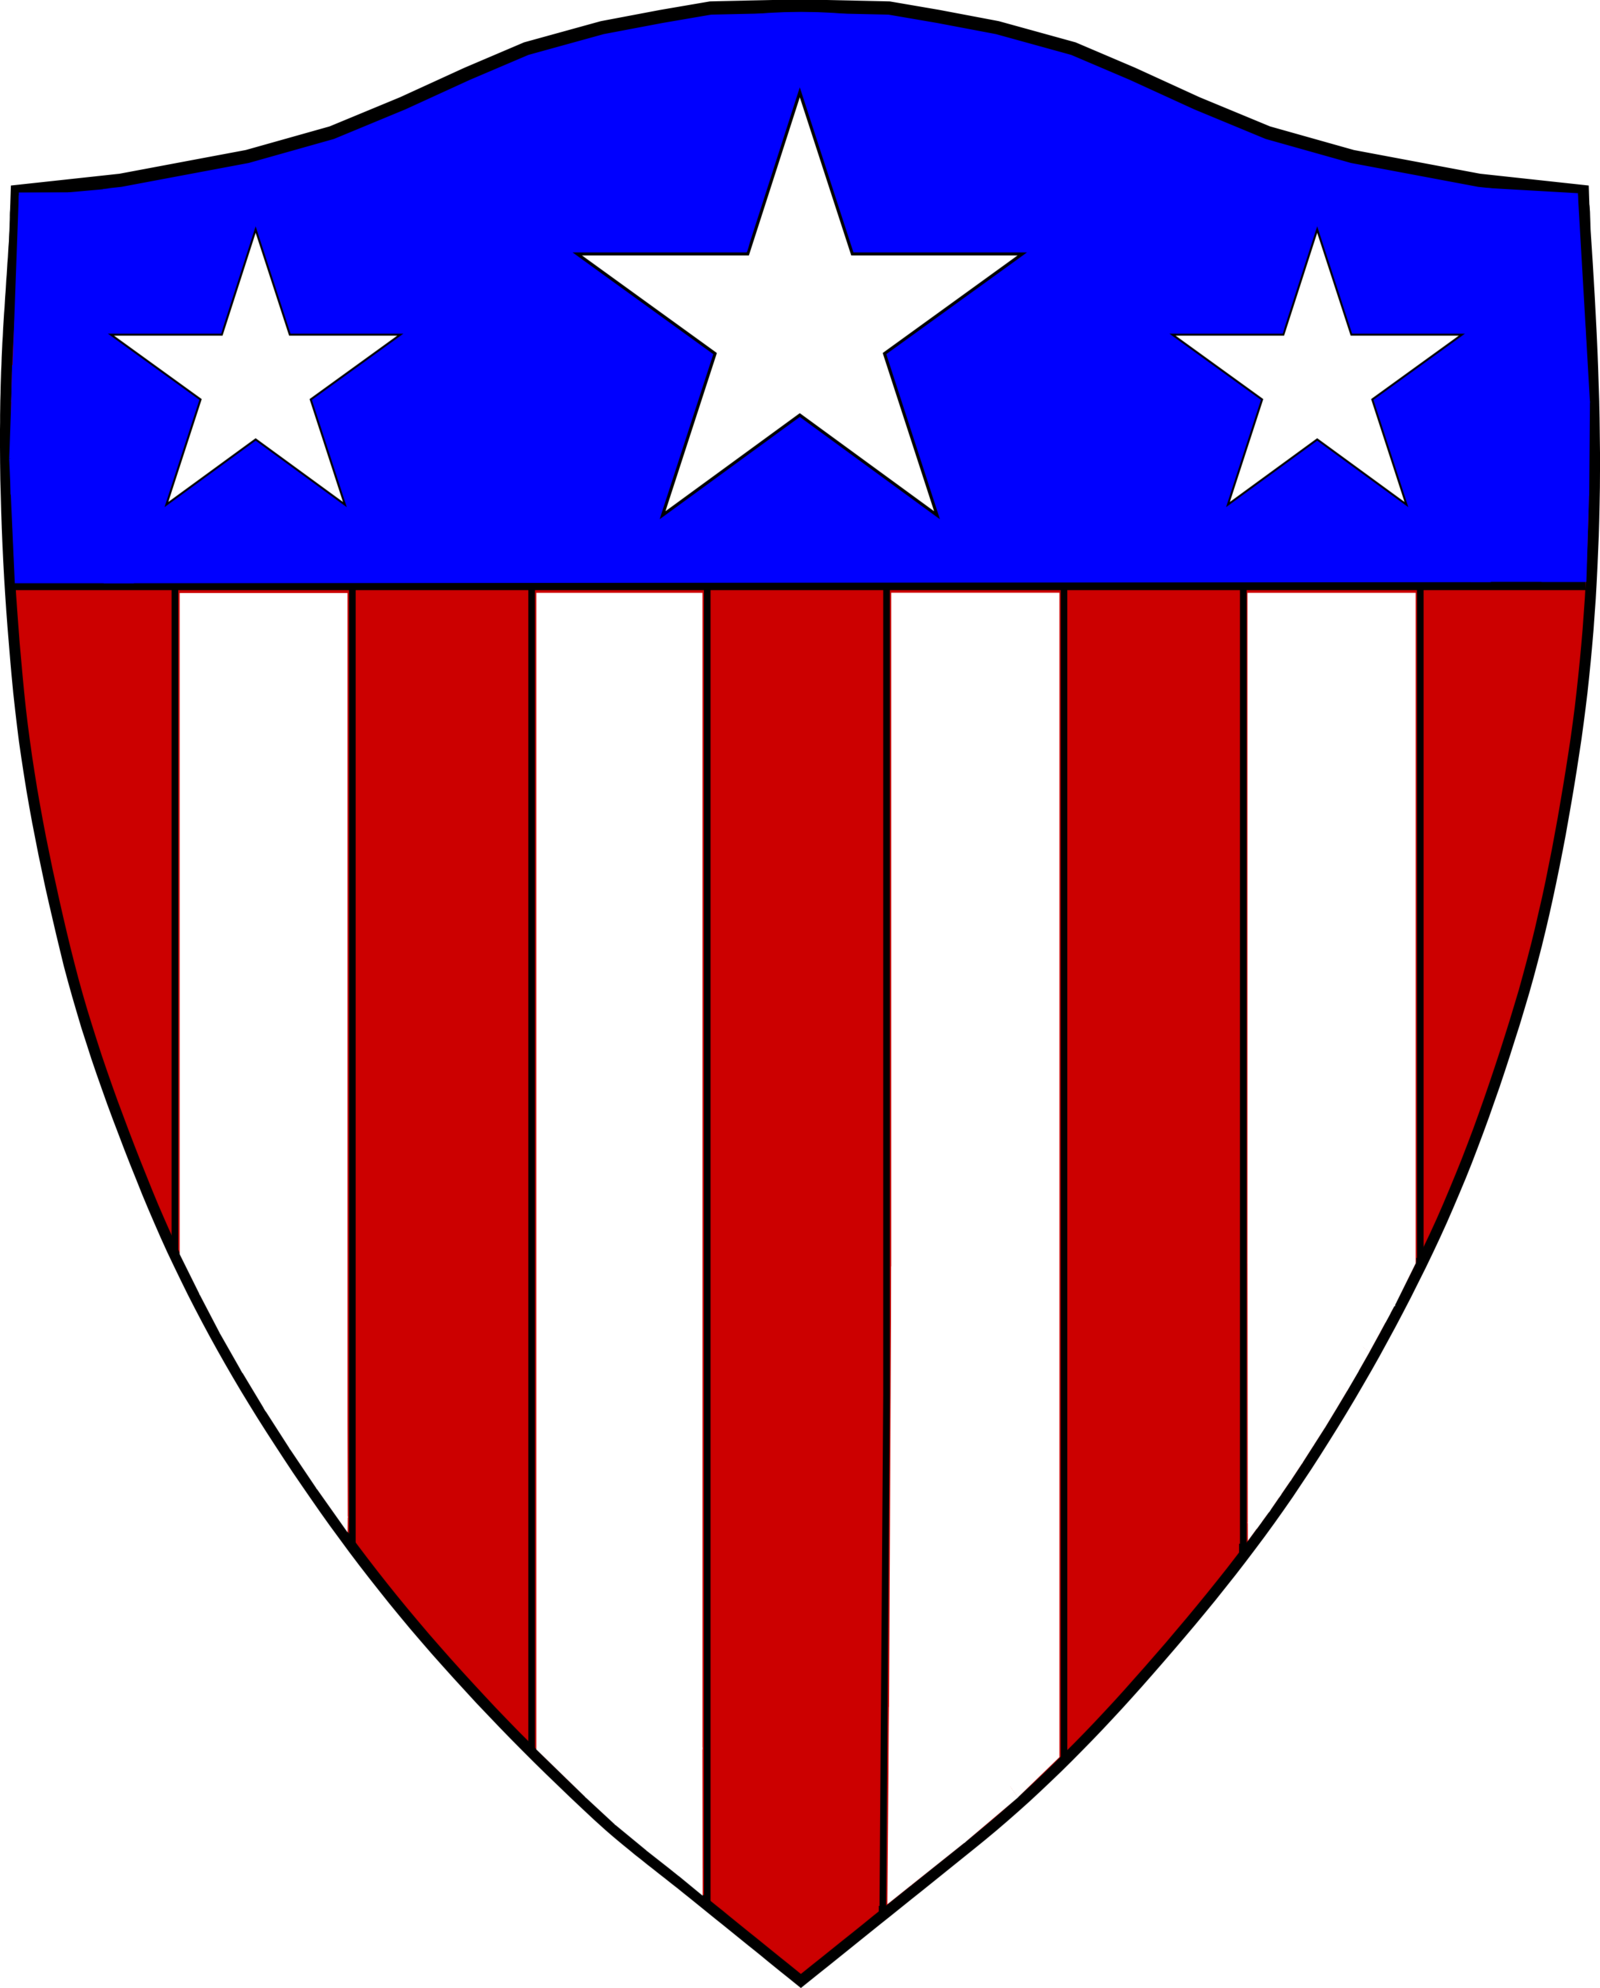 America typical free collection. Clipart shield fancy